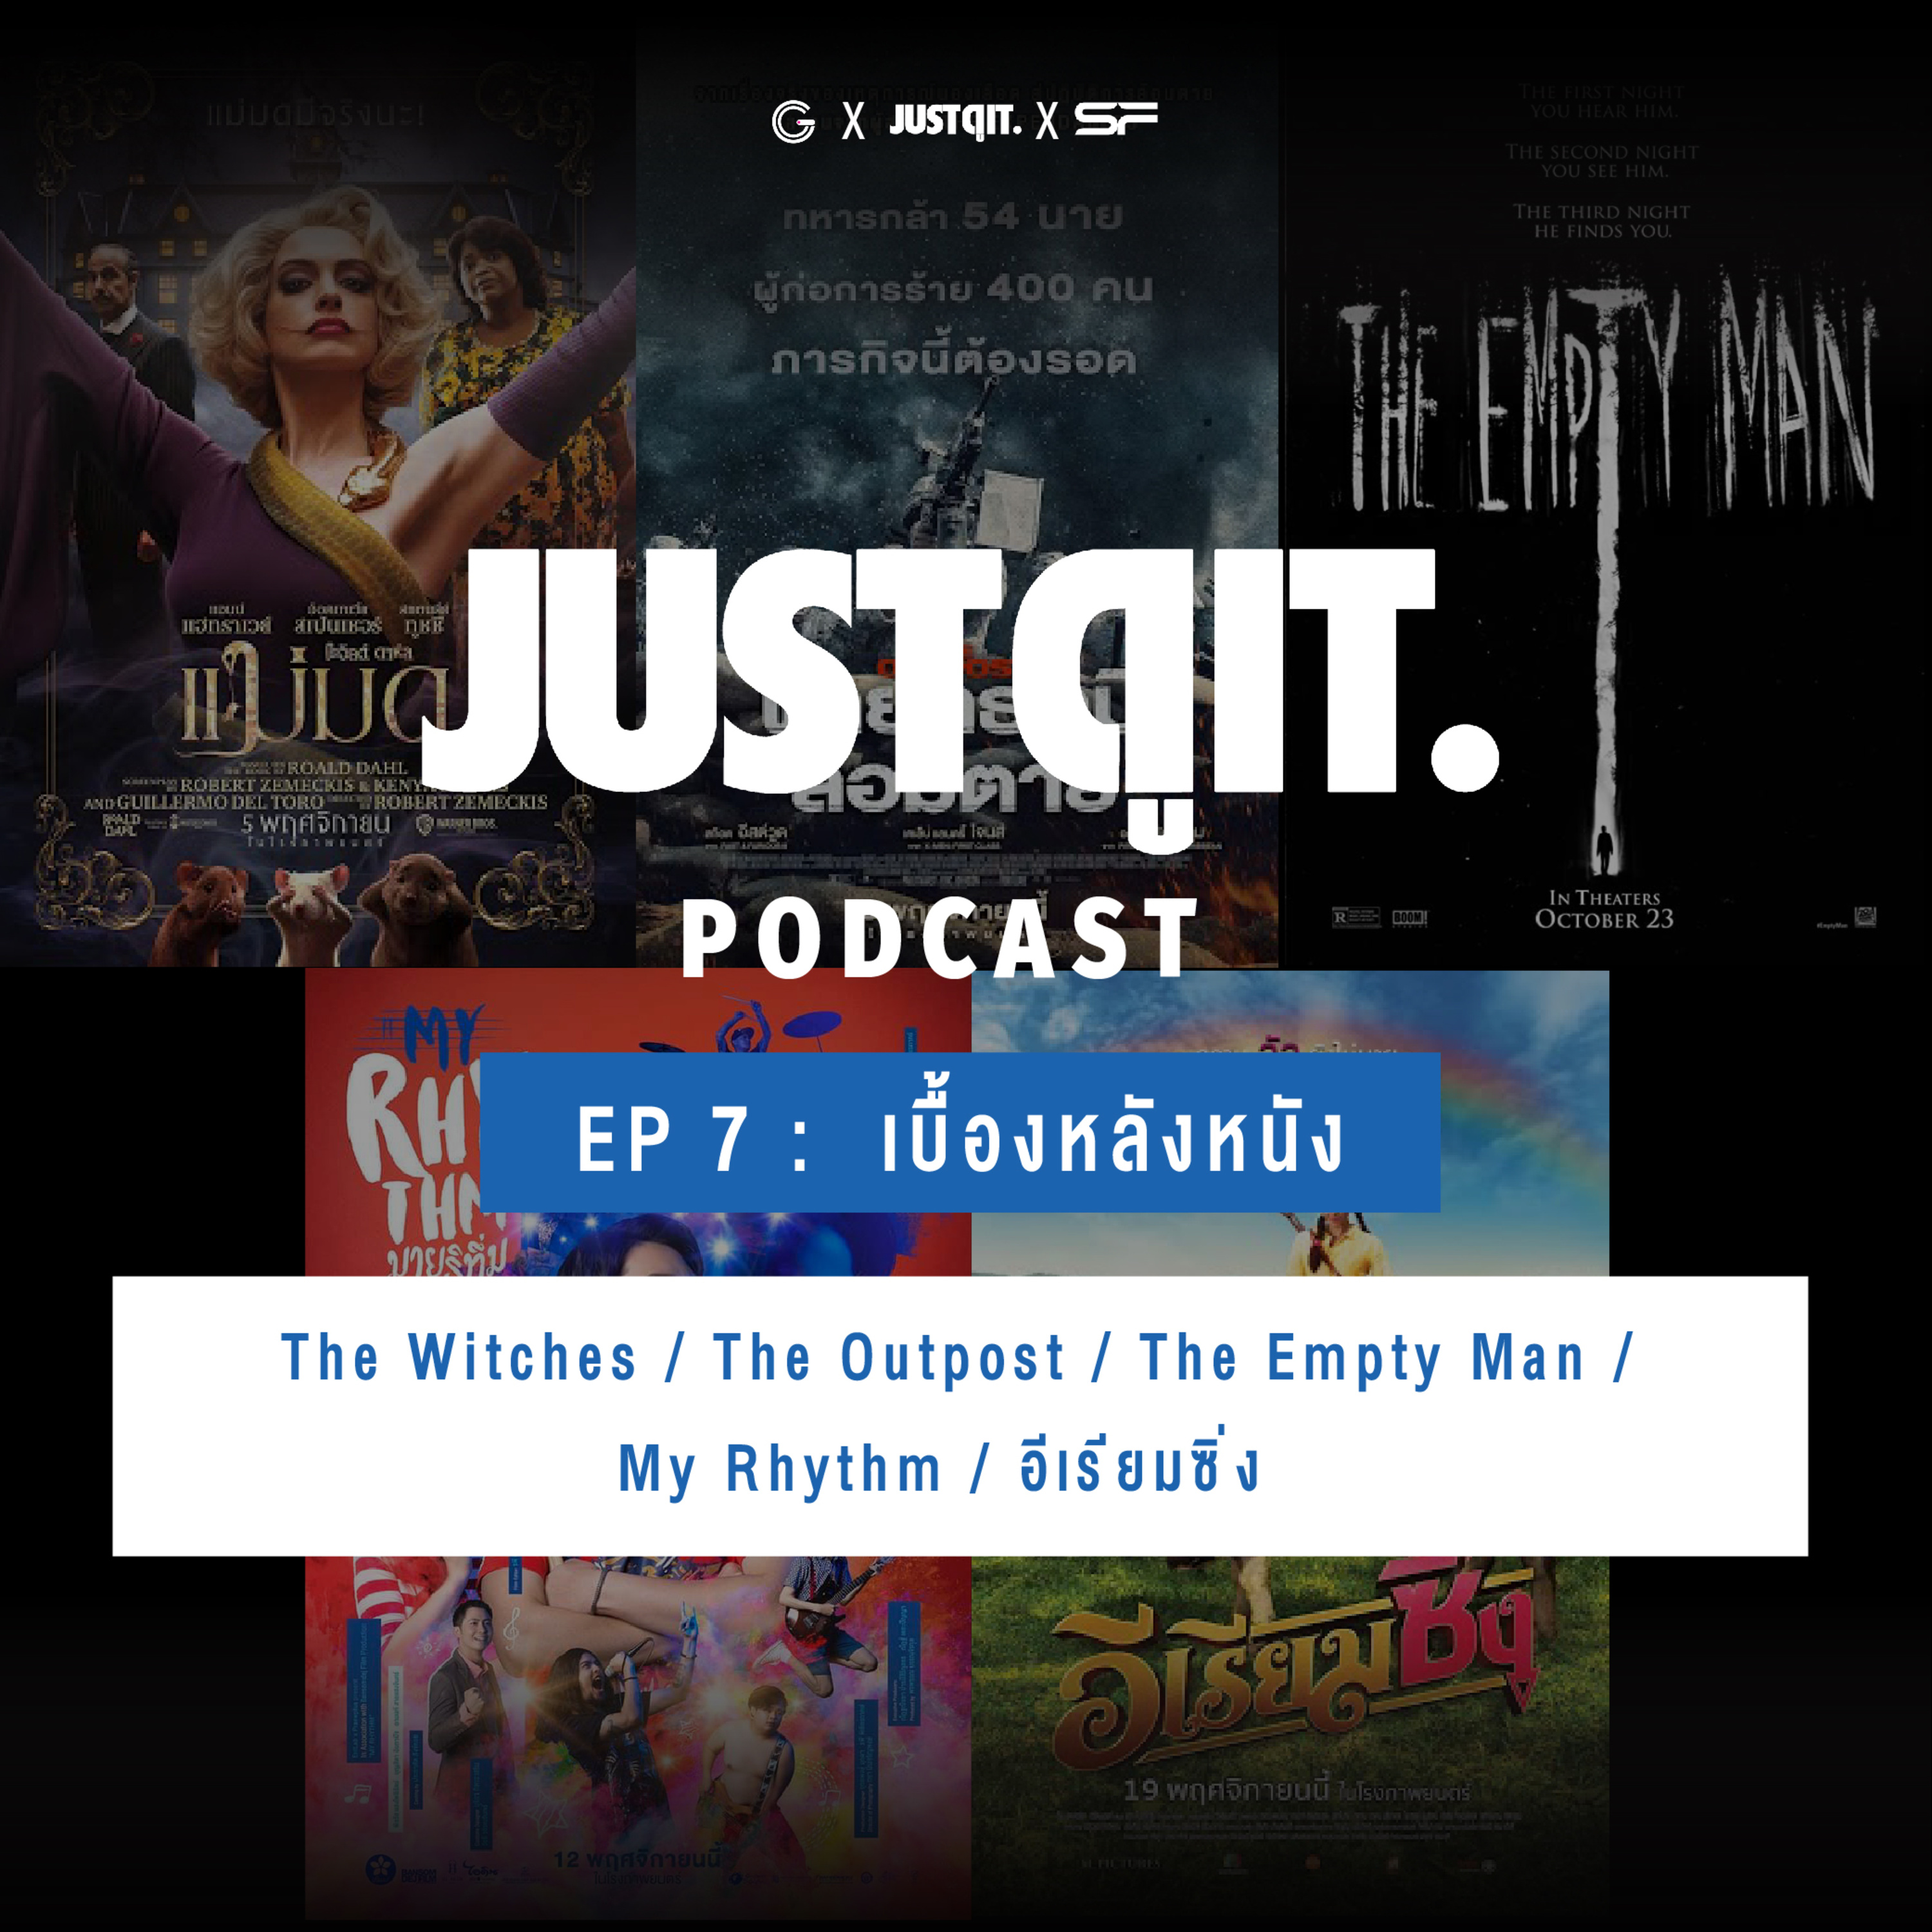 Just ดู IT. Podcast EP7 : เบื้องหลังหนัง The Witches / The Outpost / The Empty Man / My Rhythm / อีเรียมซิ่ง